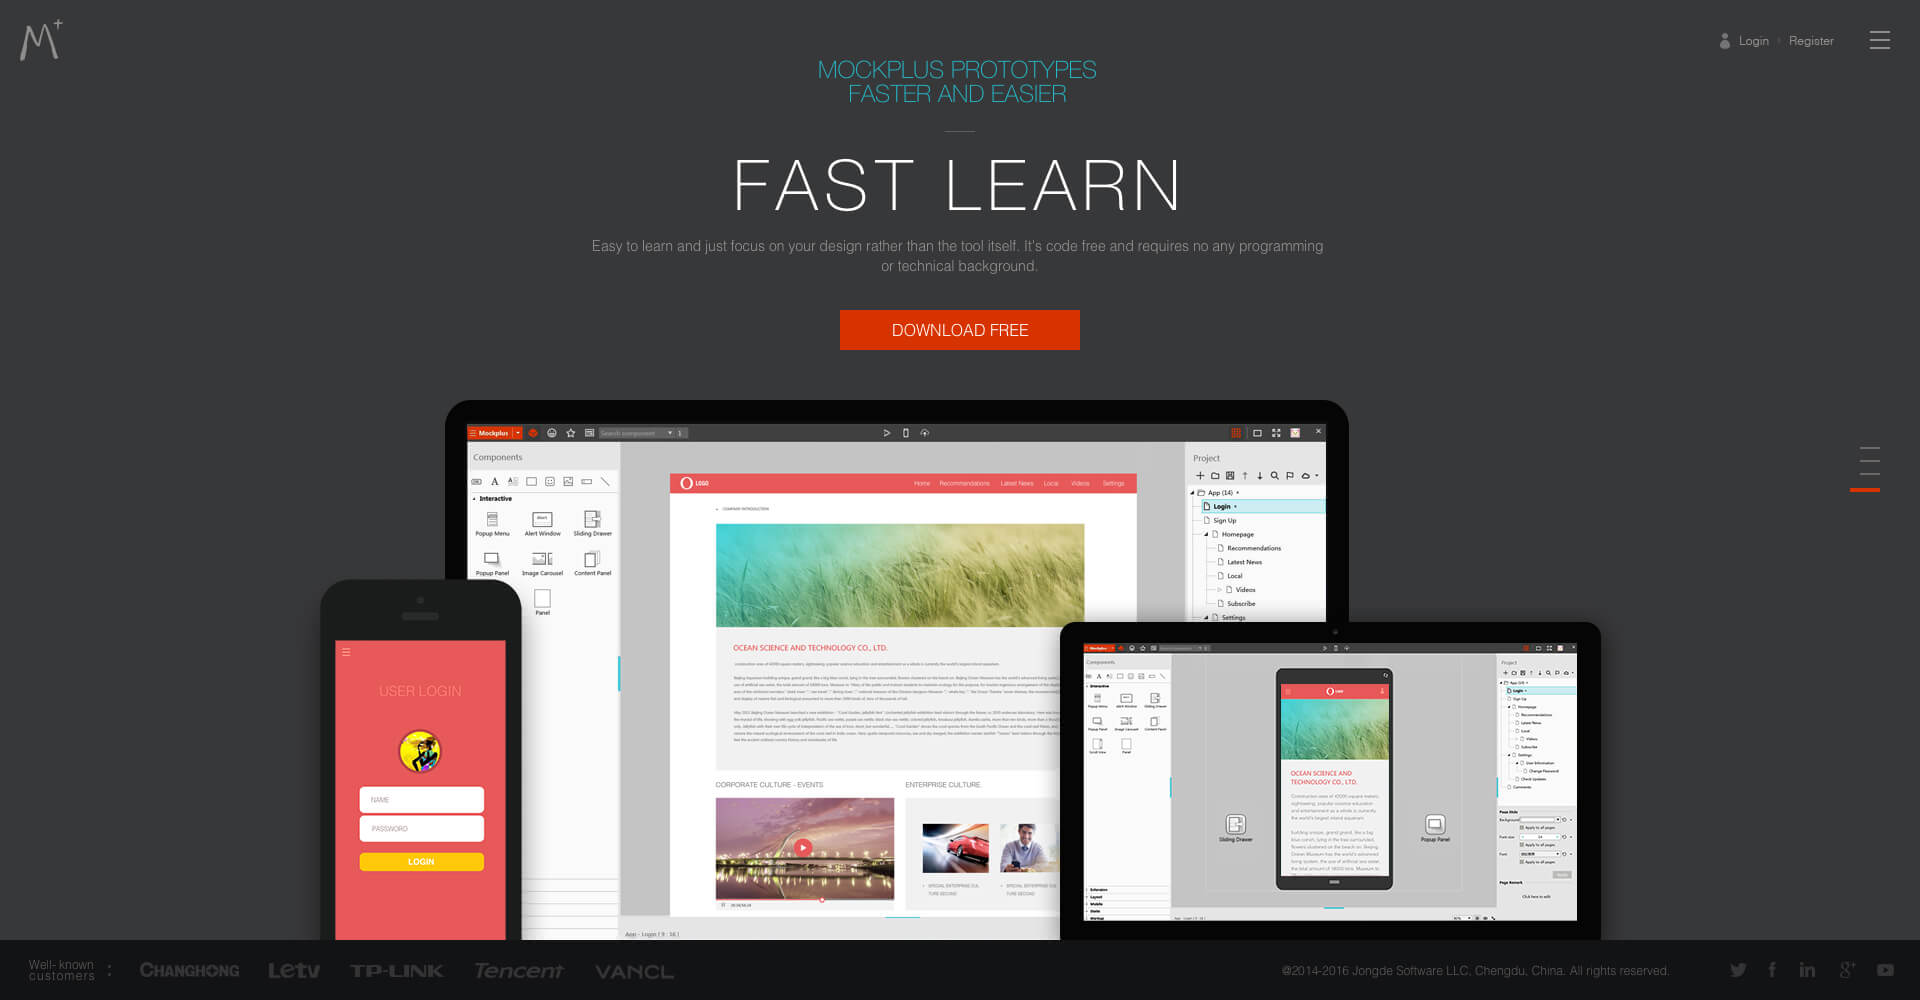 25 Free Mockup and Wireframe Tools for Web Designers |